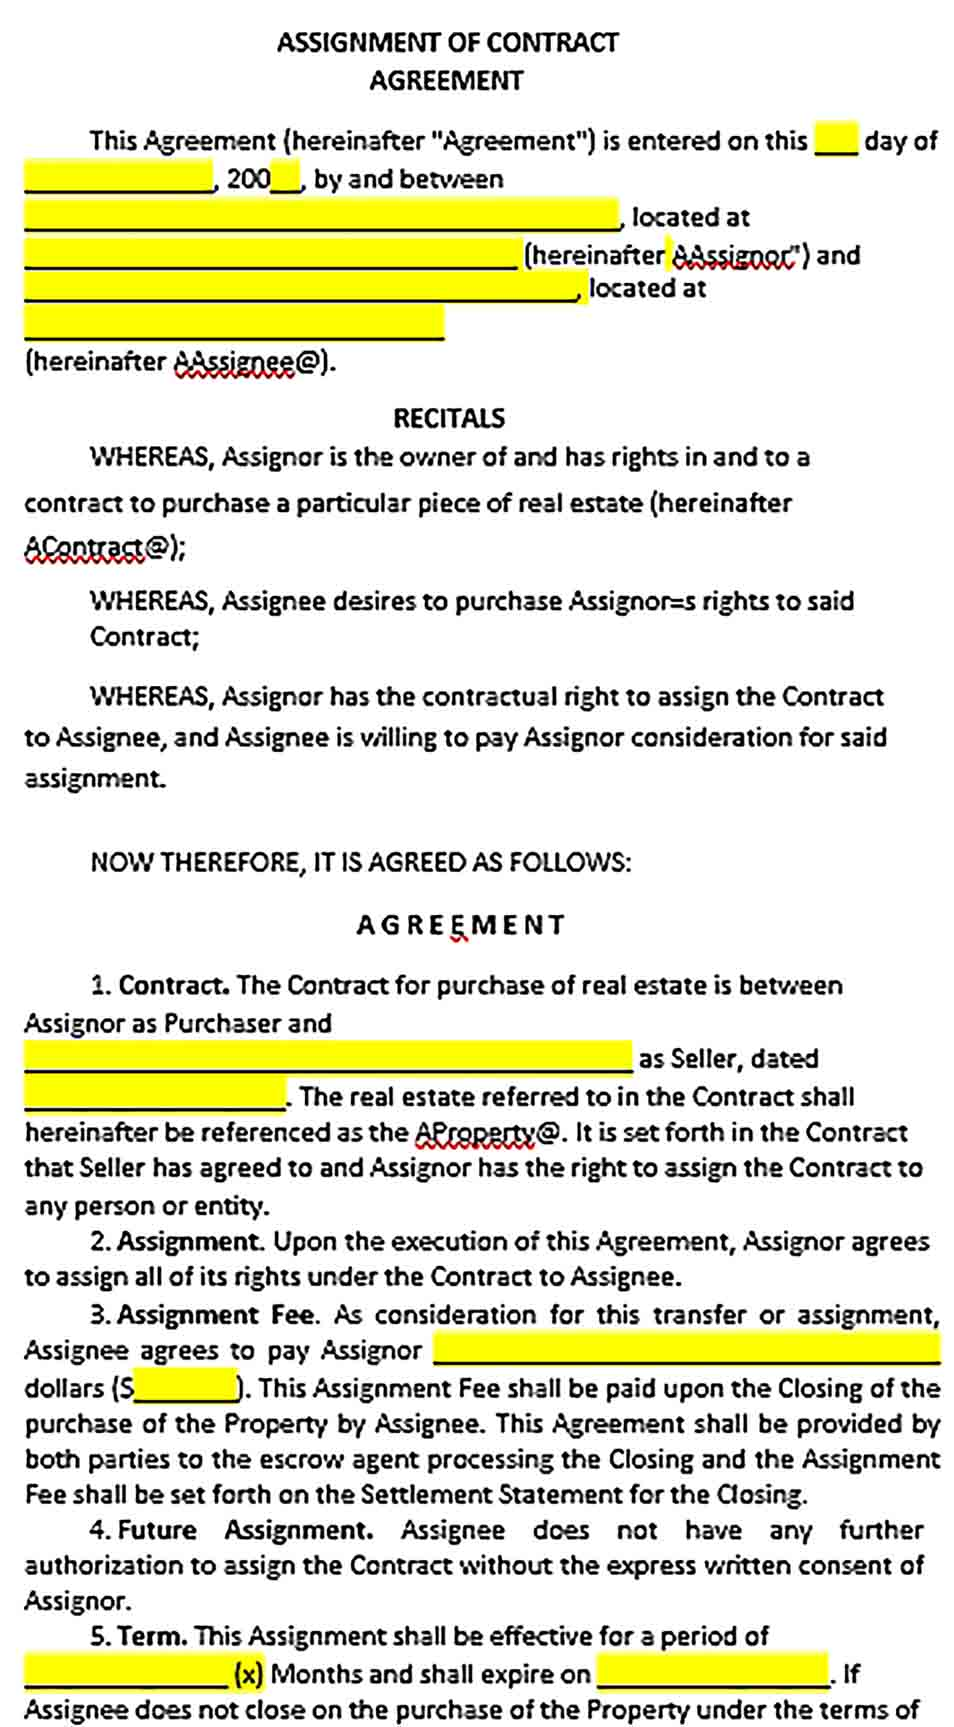 Sample Assignment of Contract Agreement